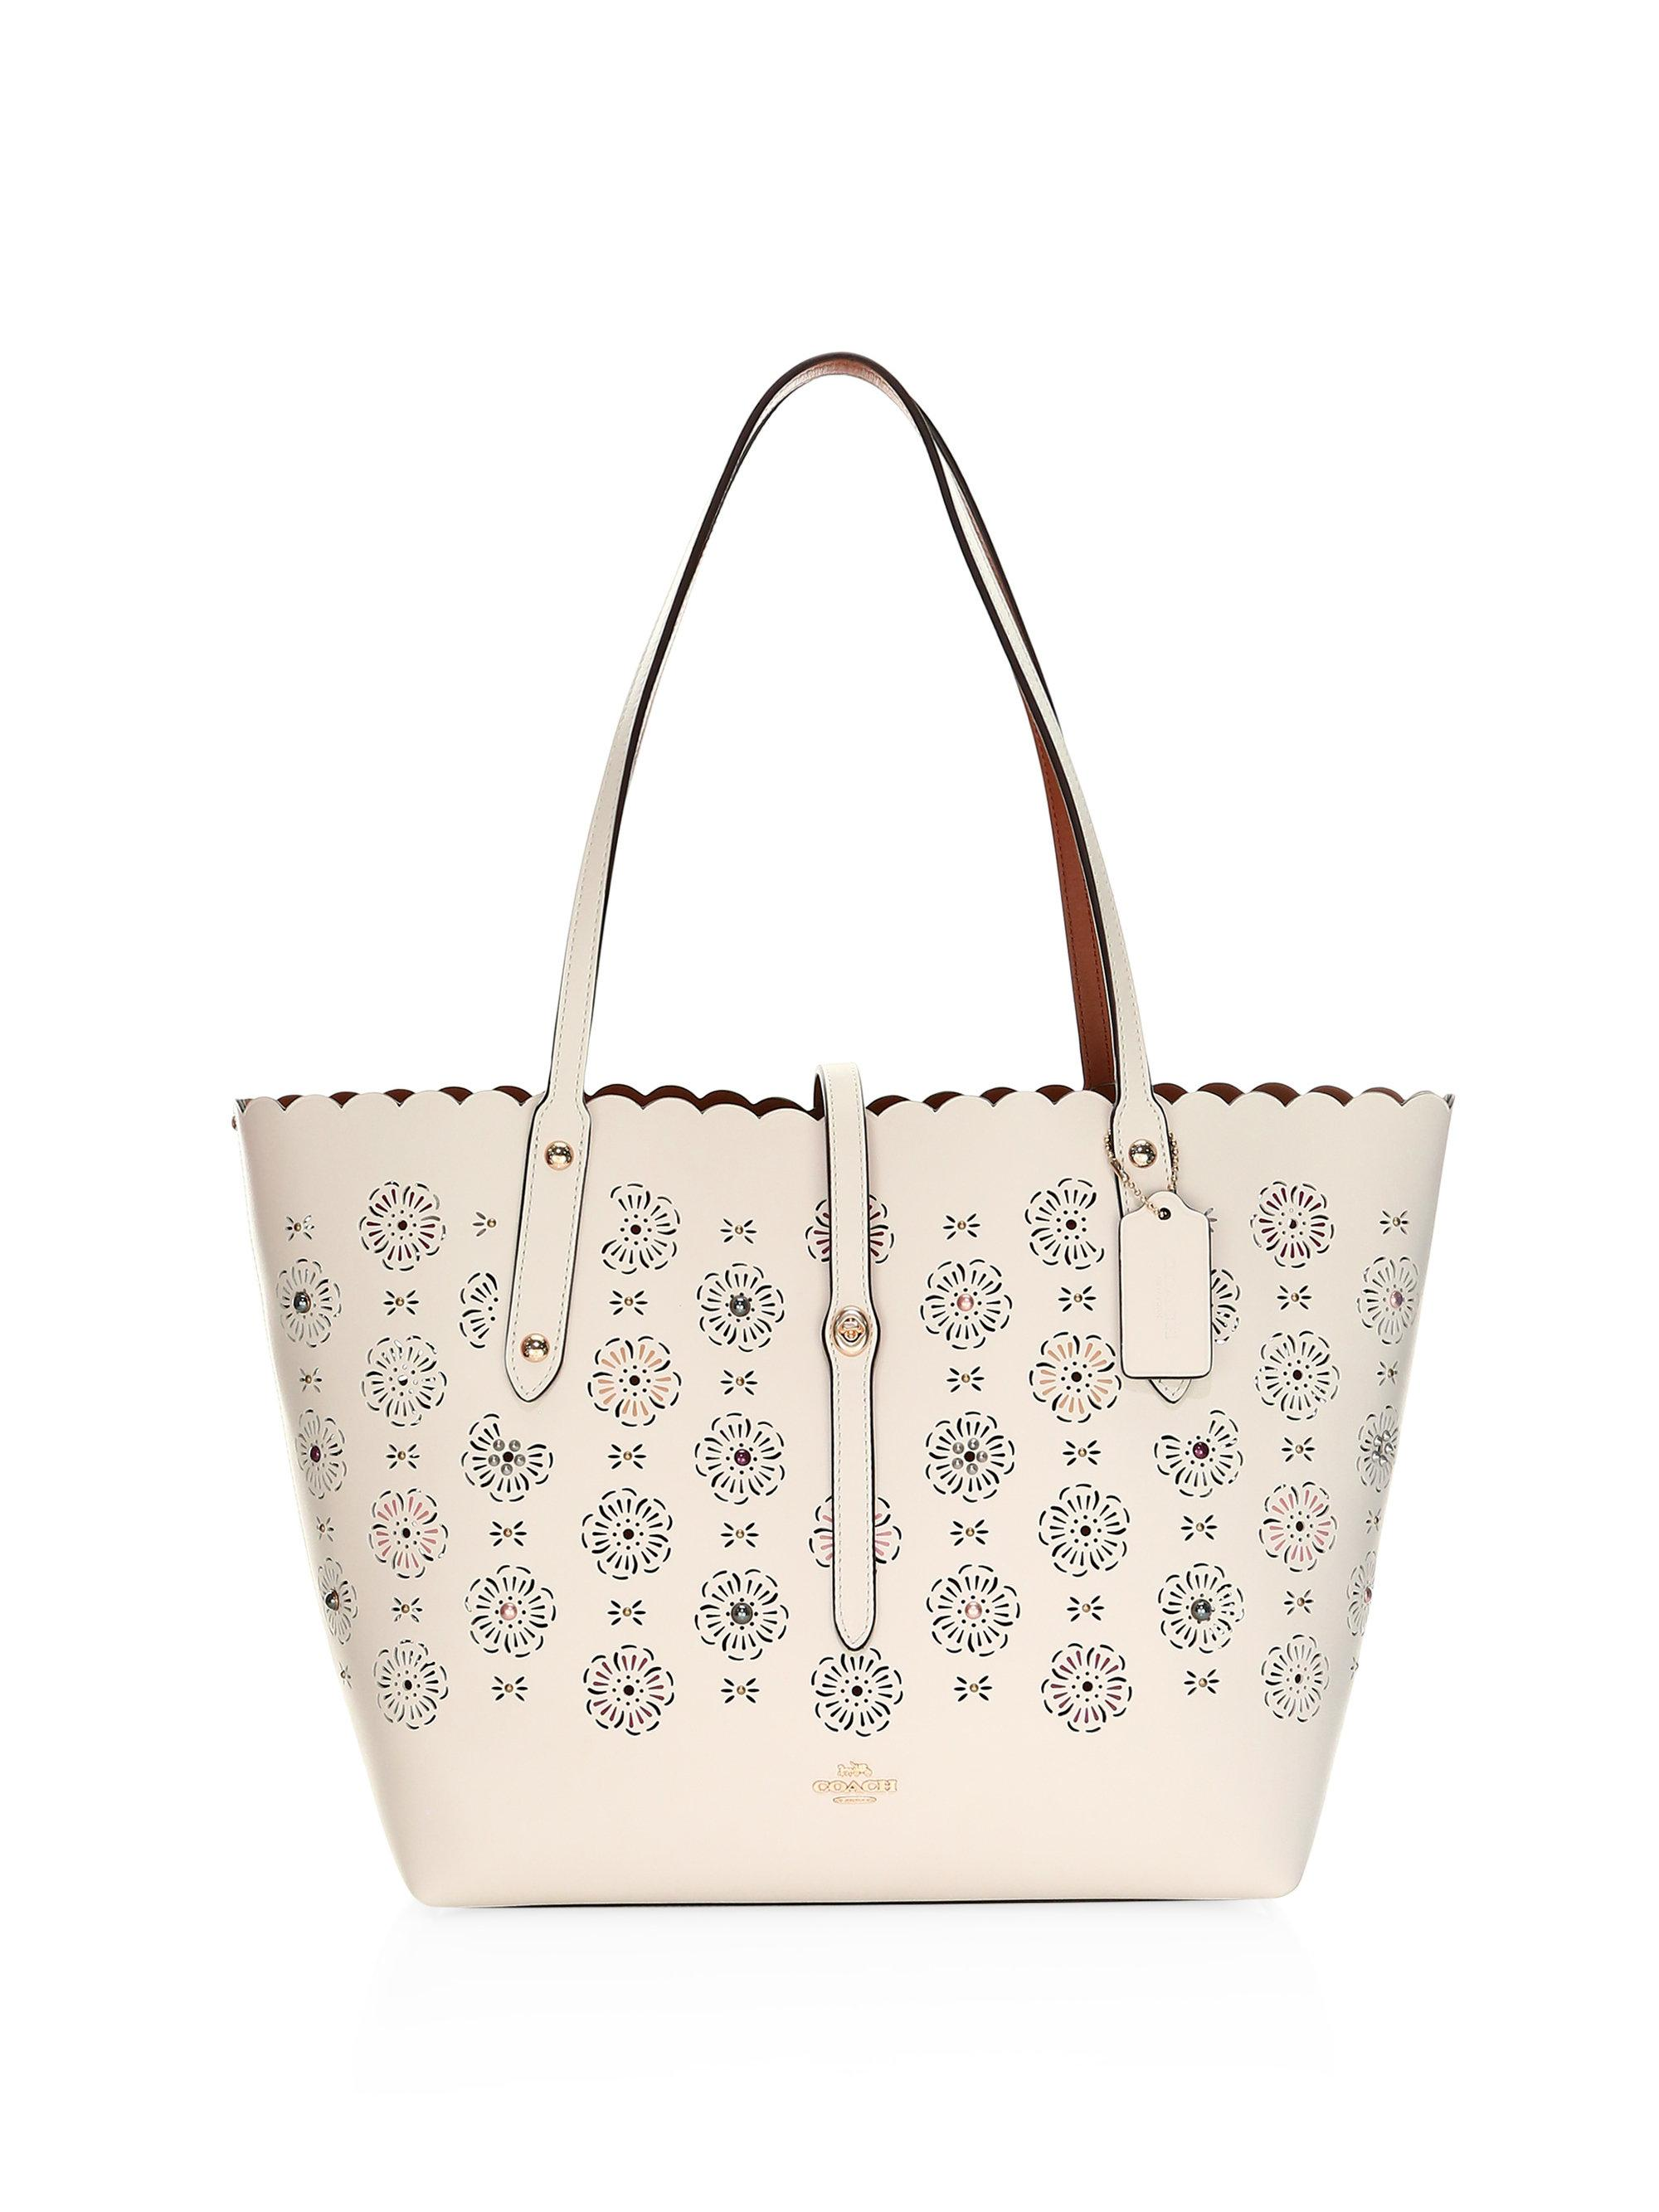 7d6b51e66bc ... where can i buy coach cut out tea rose market tote save  34.98542274052478 lyst 4c4ec a0647 ...